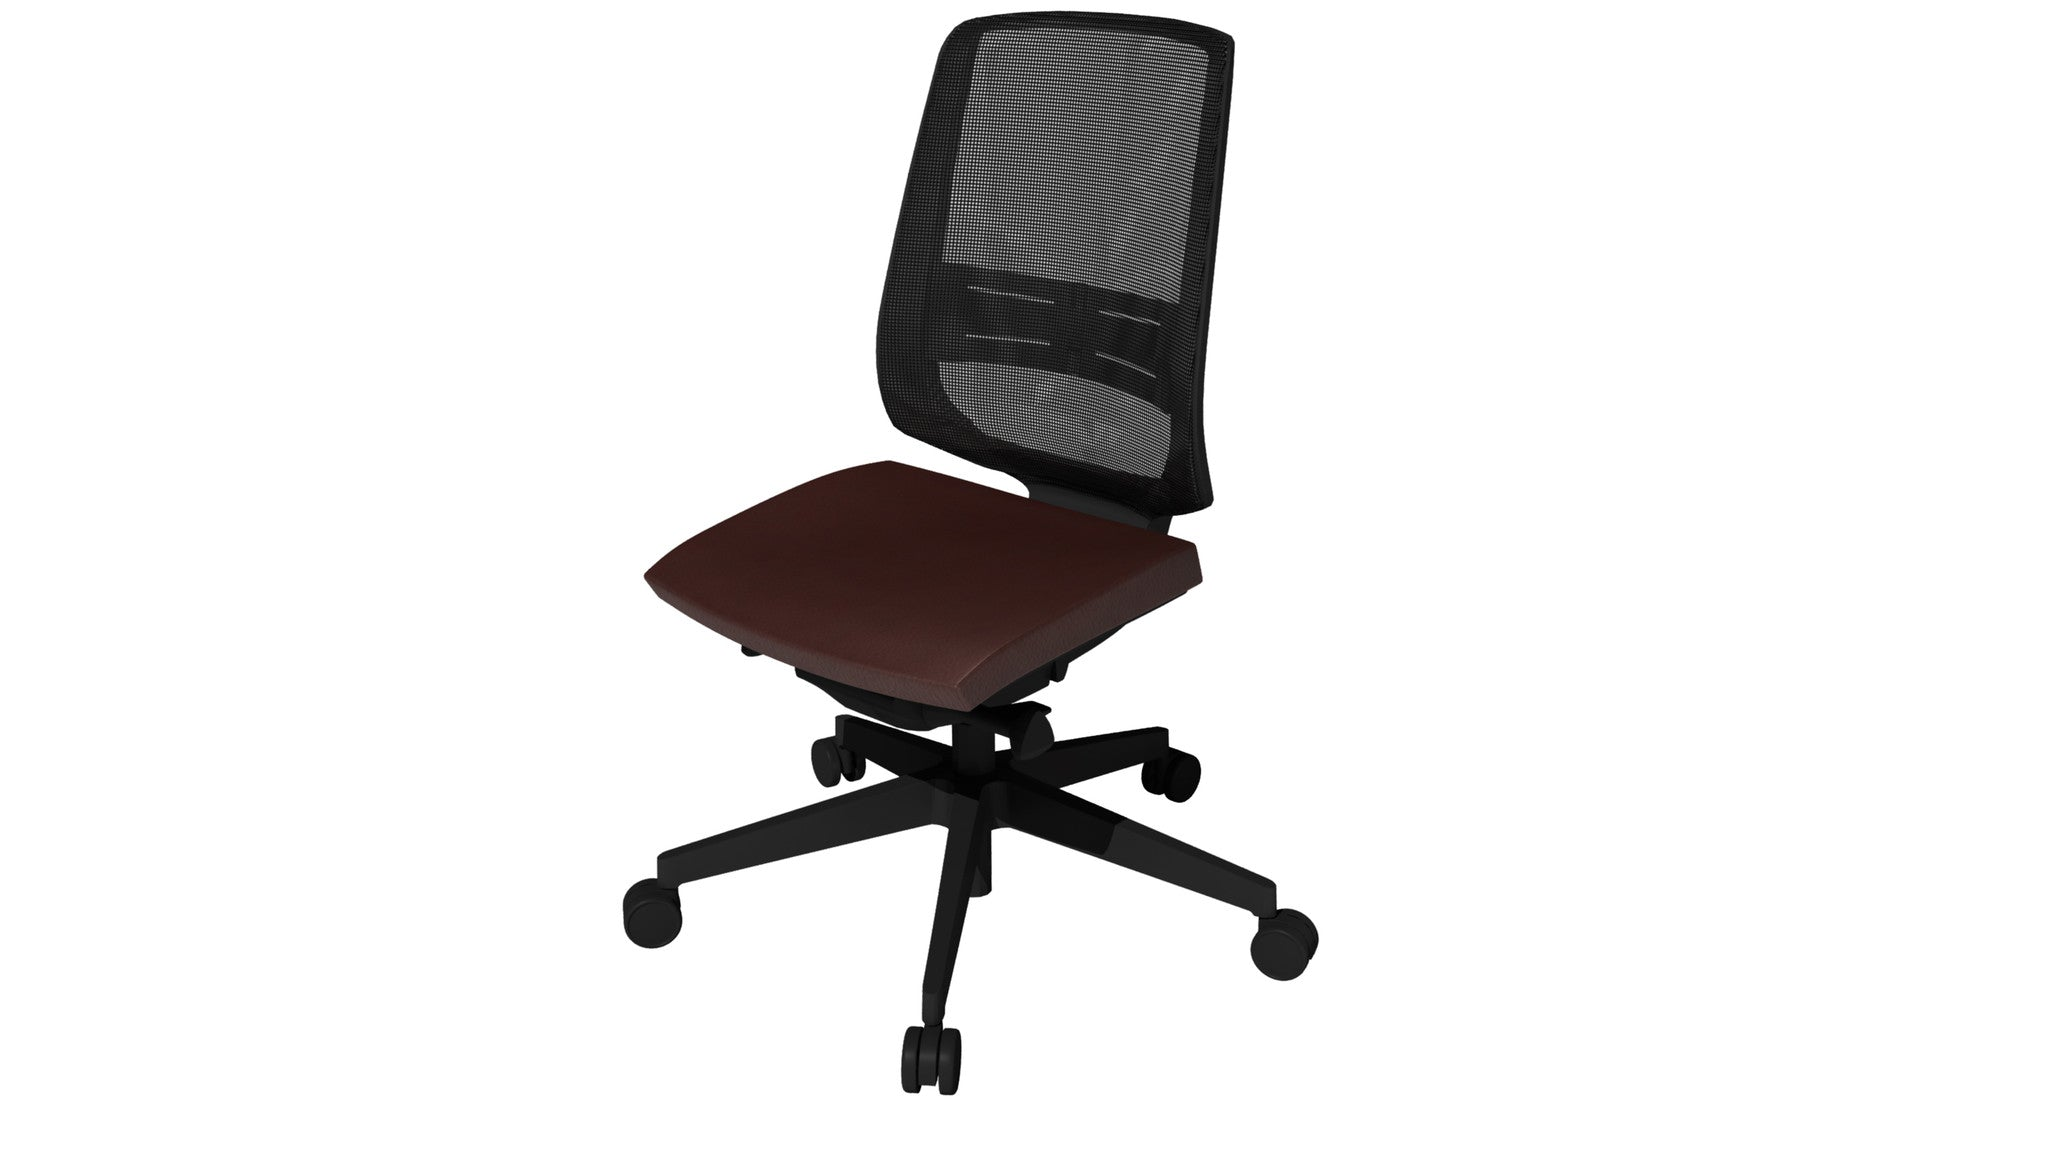 Rumas kontorstol office chair Fly pumpe - dark brown leather (sl-20)